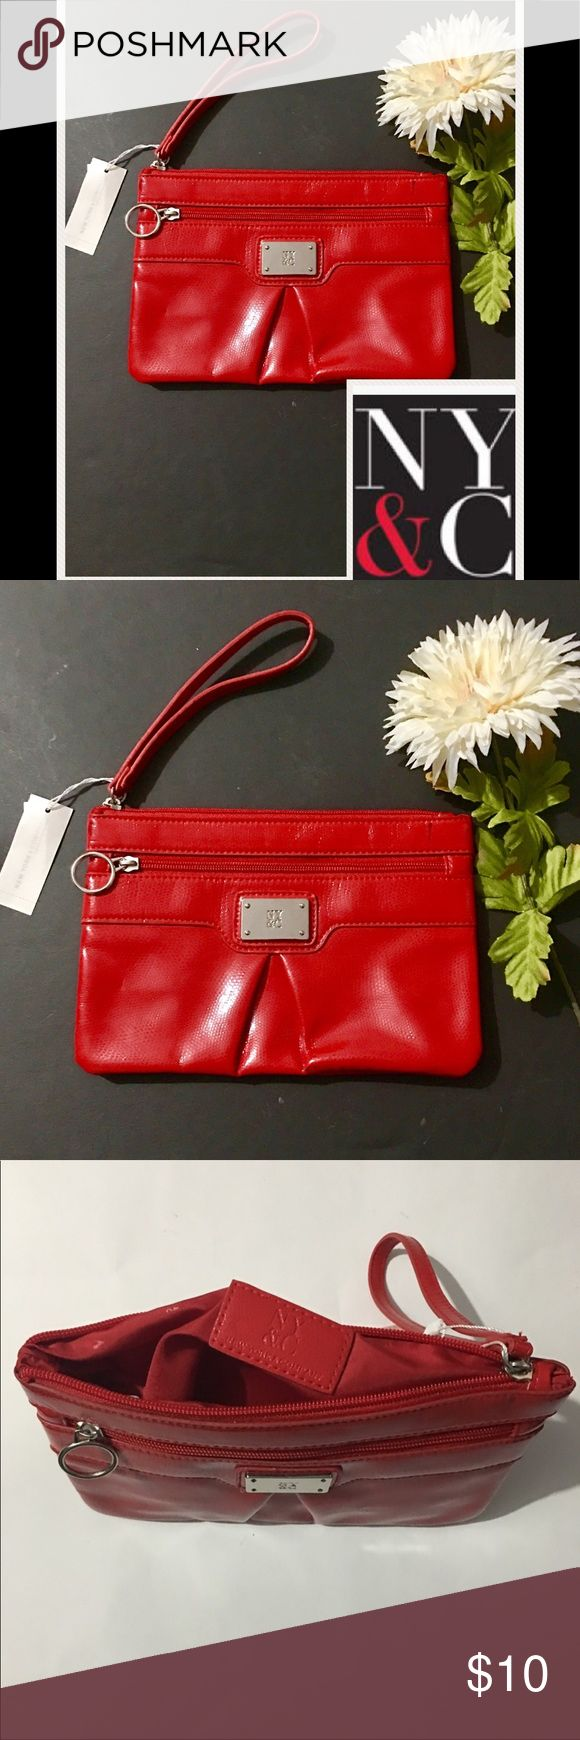 NY&C WRISTLET/CLUTCH NY&C WRISTLET/CLUTCH shinny red color New with tags with zipper compartment in the front  For cell phone and roomy inside to put your accessories  ADD TO BUNDLE to save shipping cost NY&C Bags Clutches & Wristlets